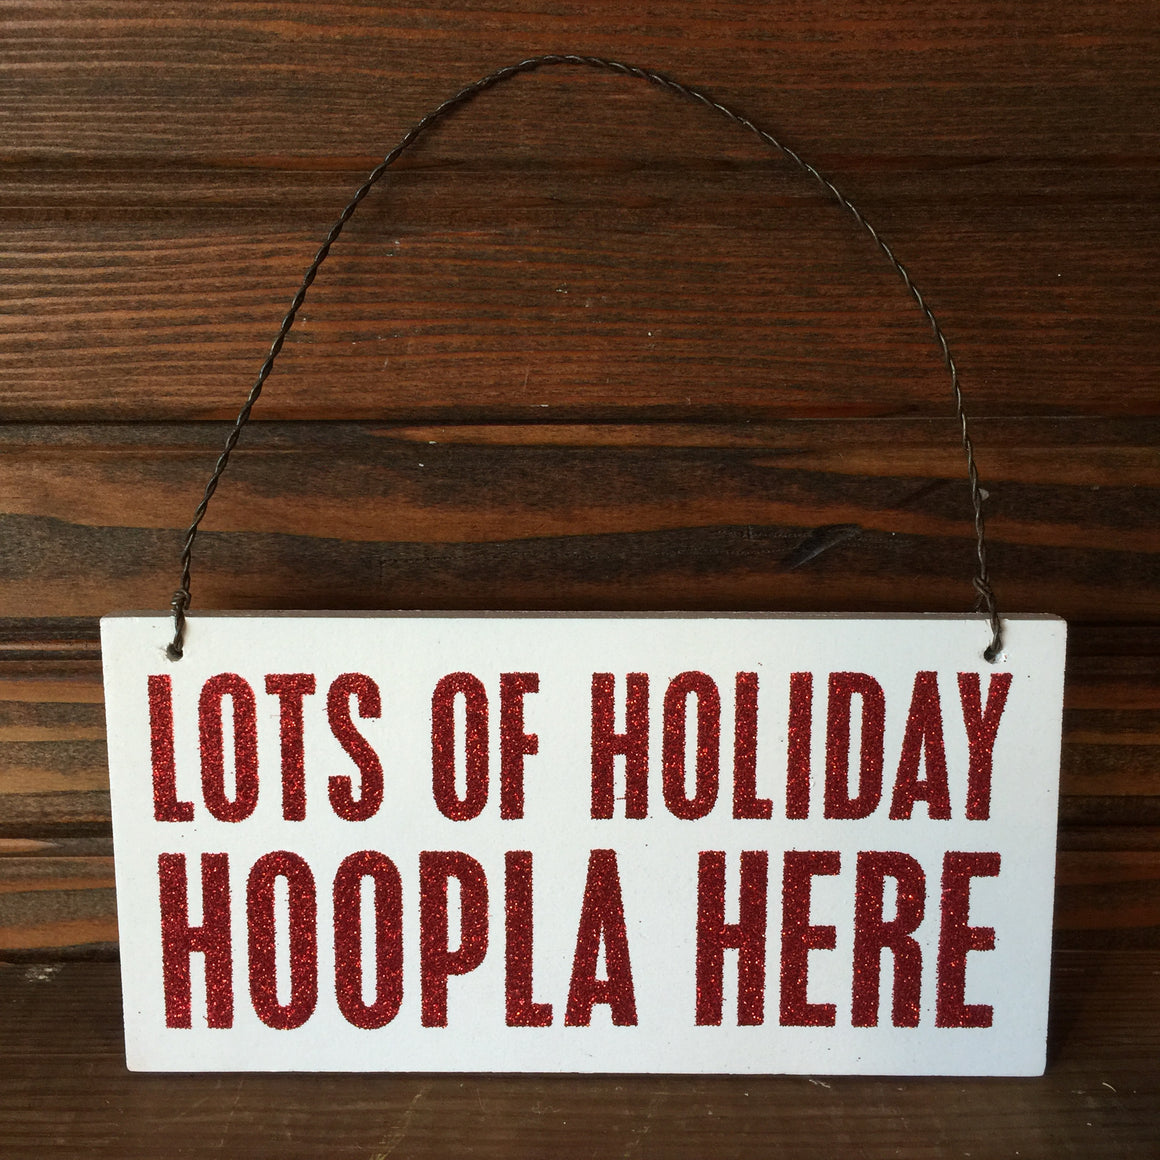 Ornament/Hanging Sign - Lots of Holiday Hoopla Here